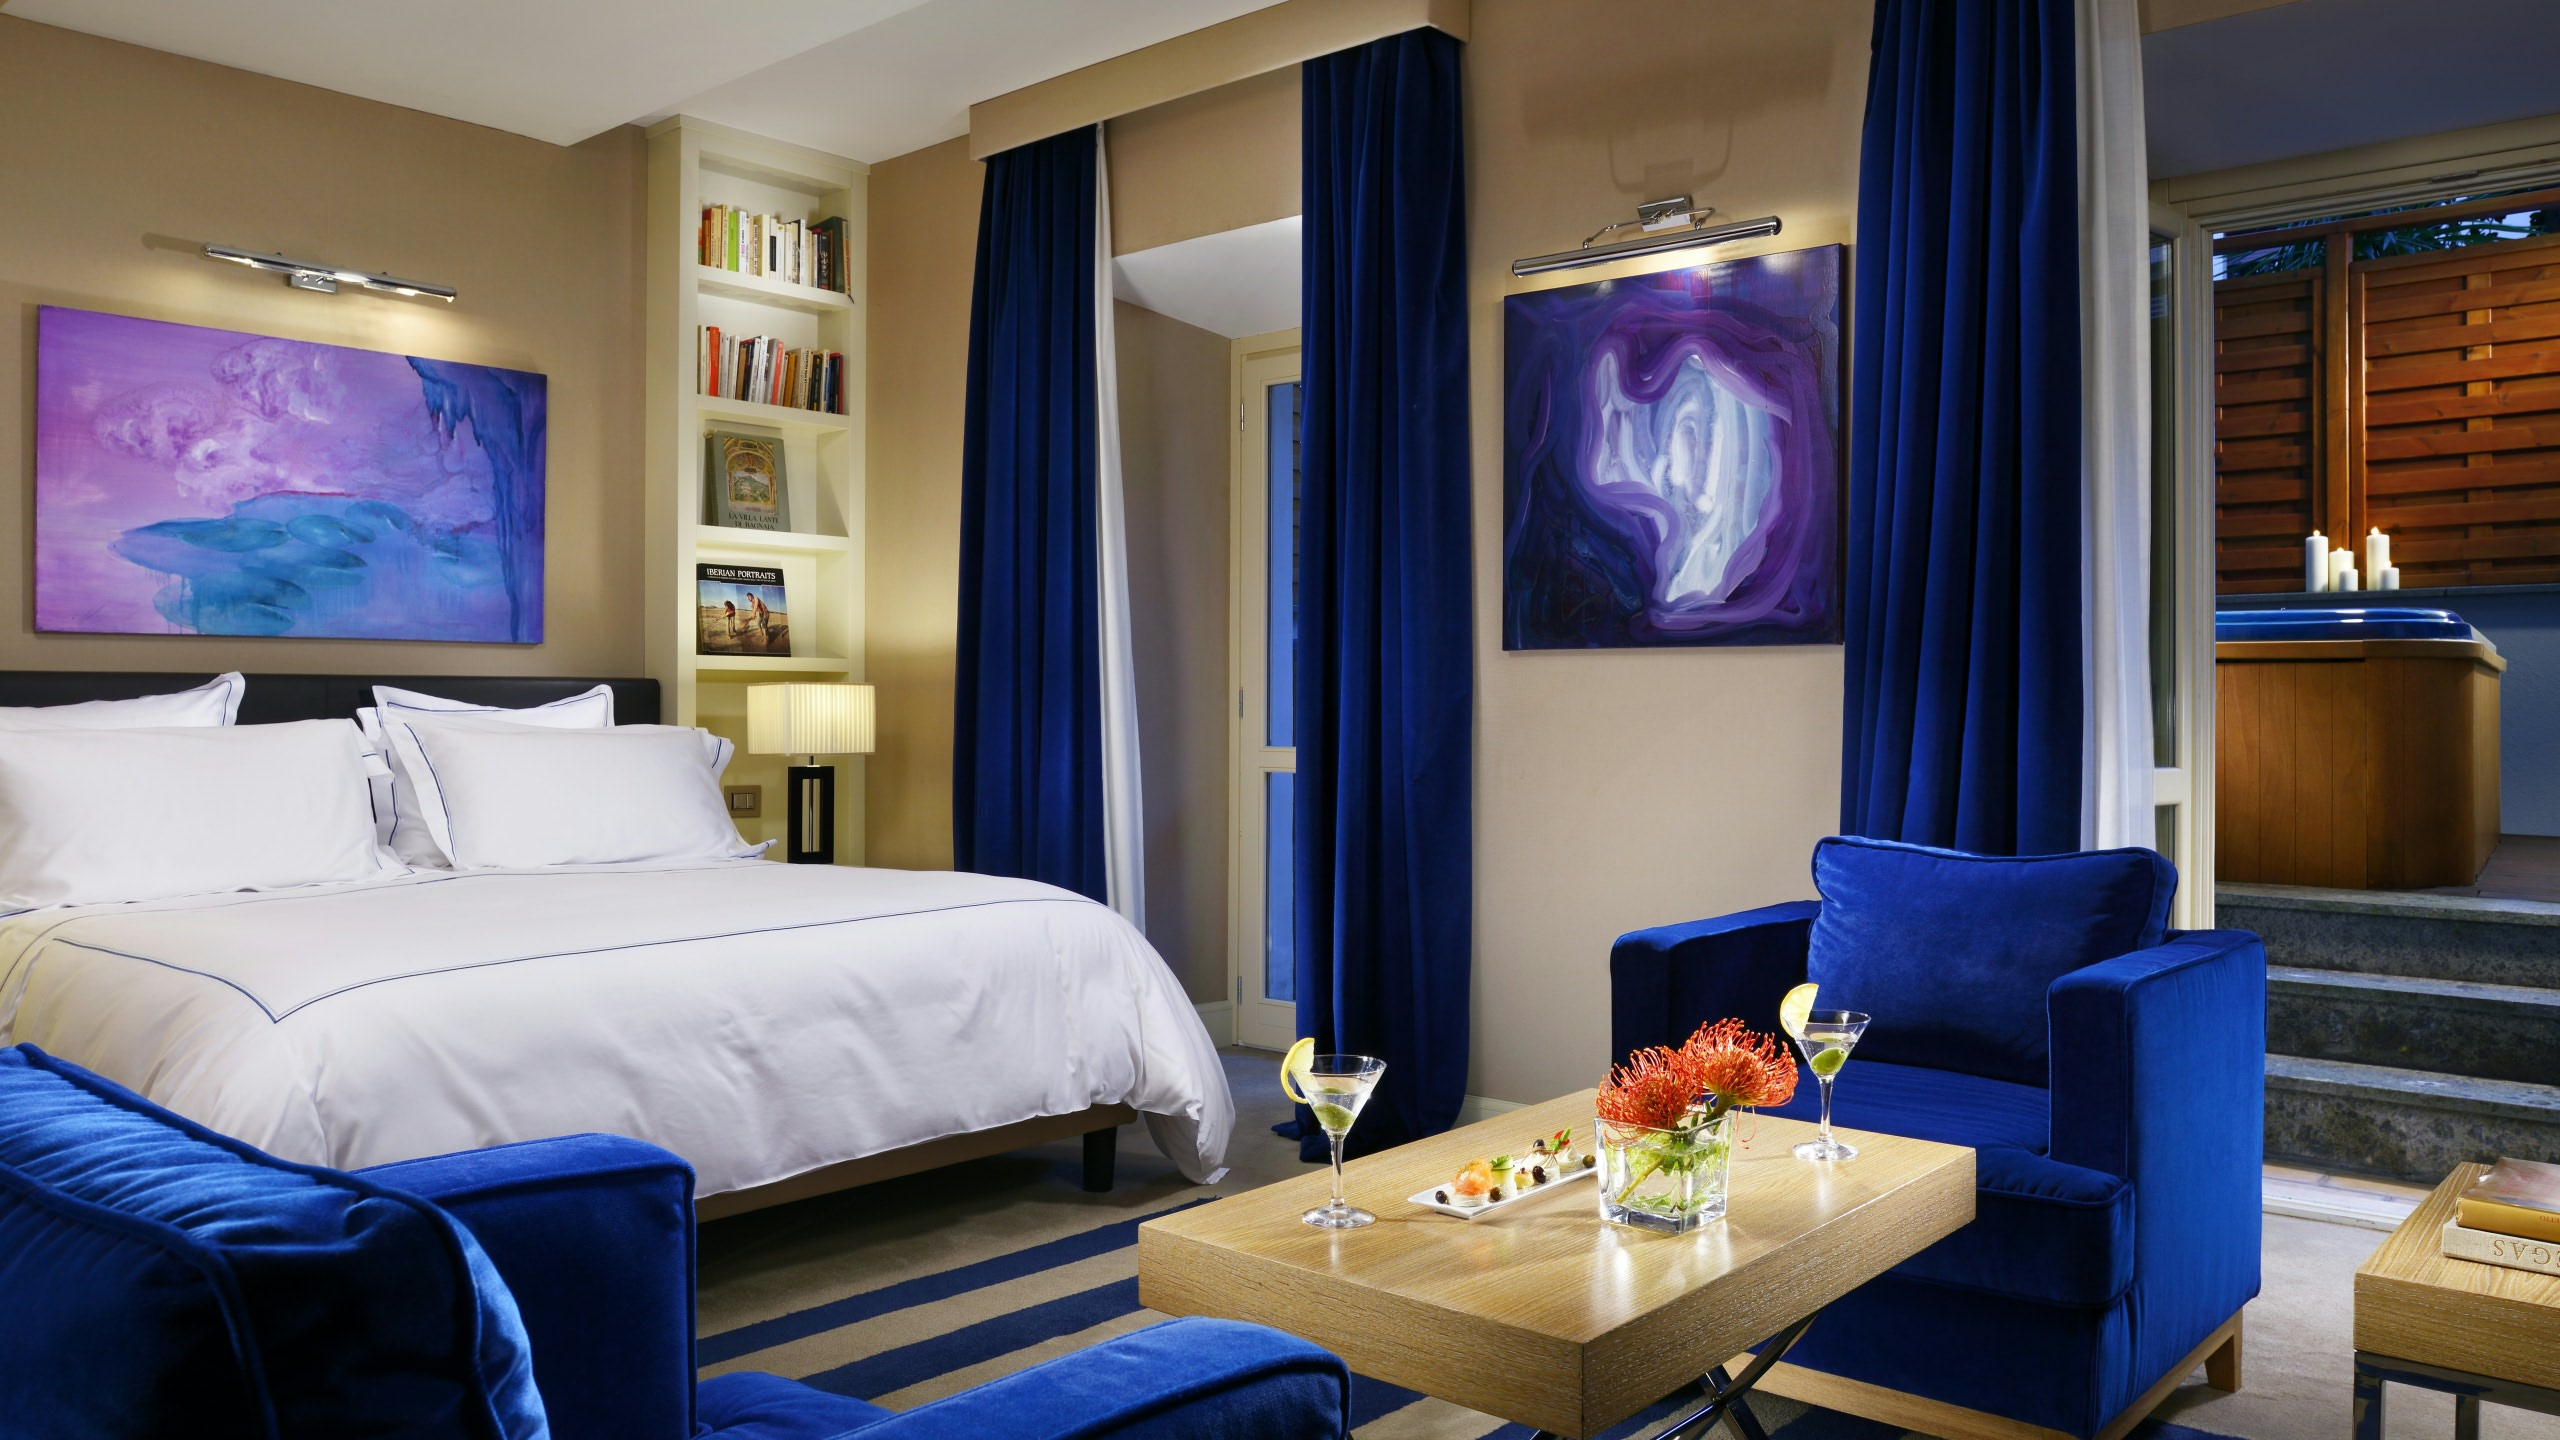 The First Luxury Art Hotel Roma Tripinview